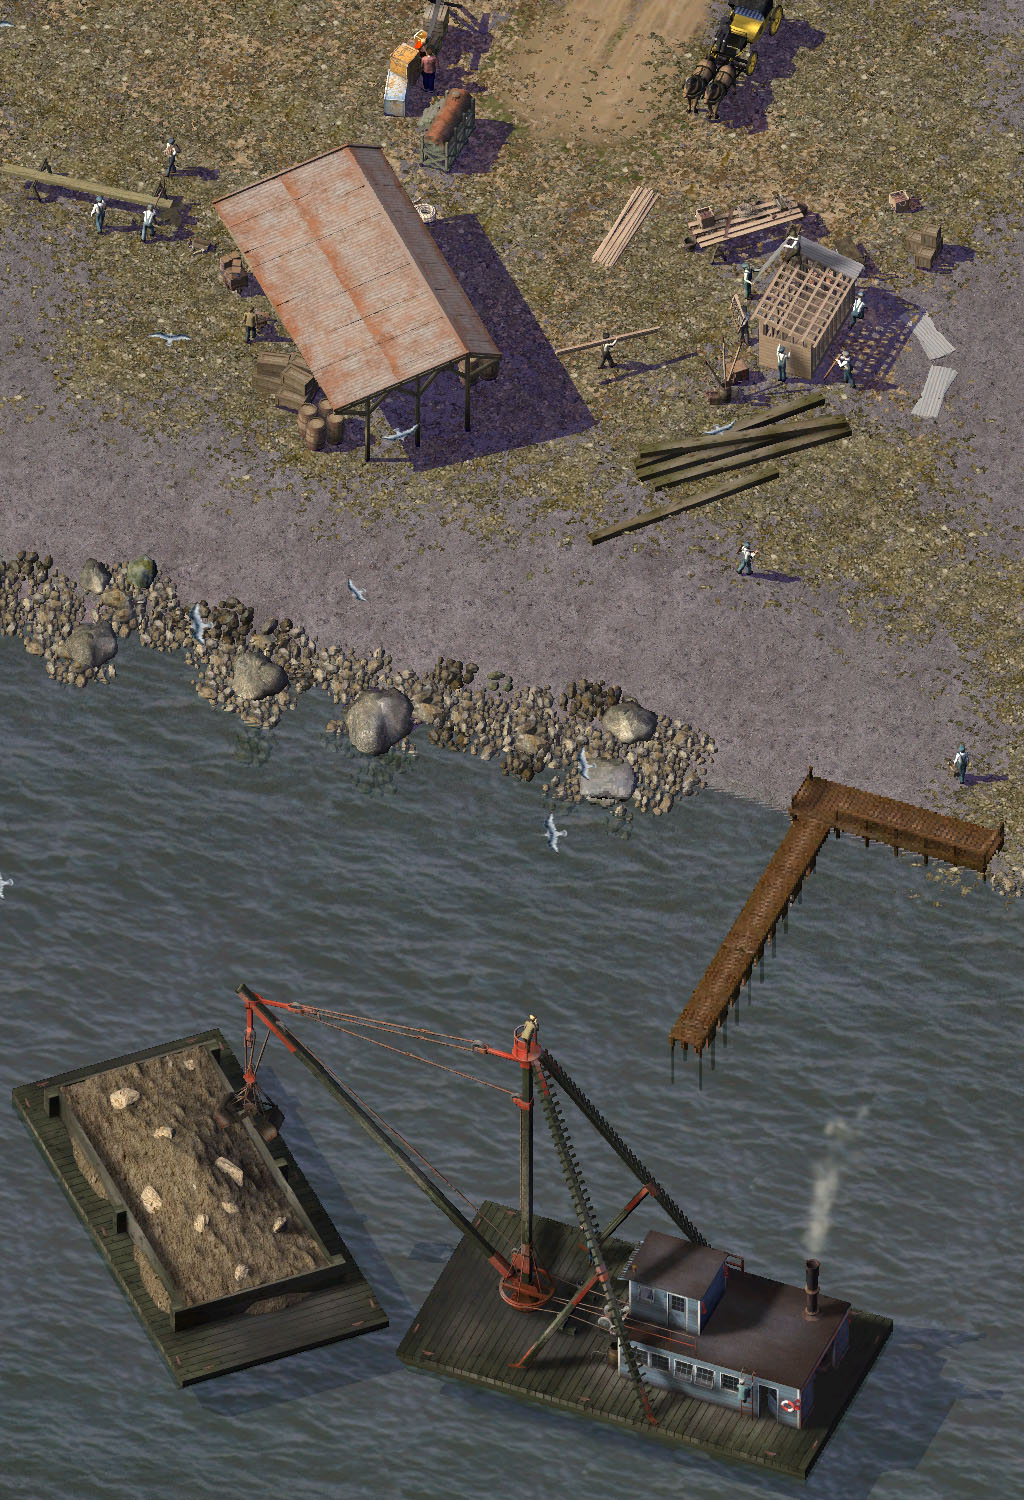 Update%2042%20-%209%20dredge%20closeup.jpg